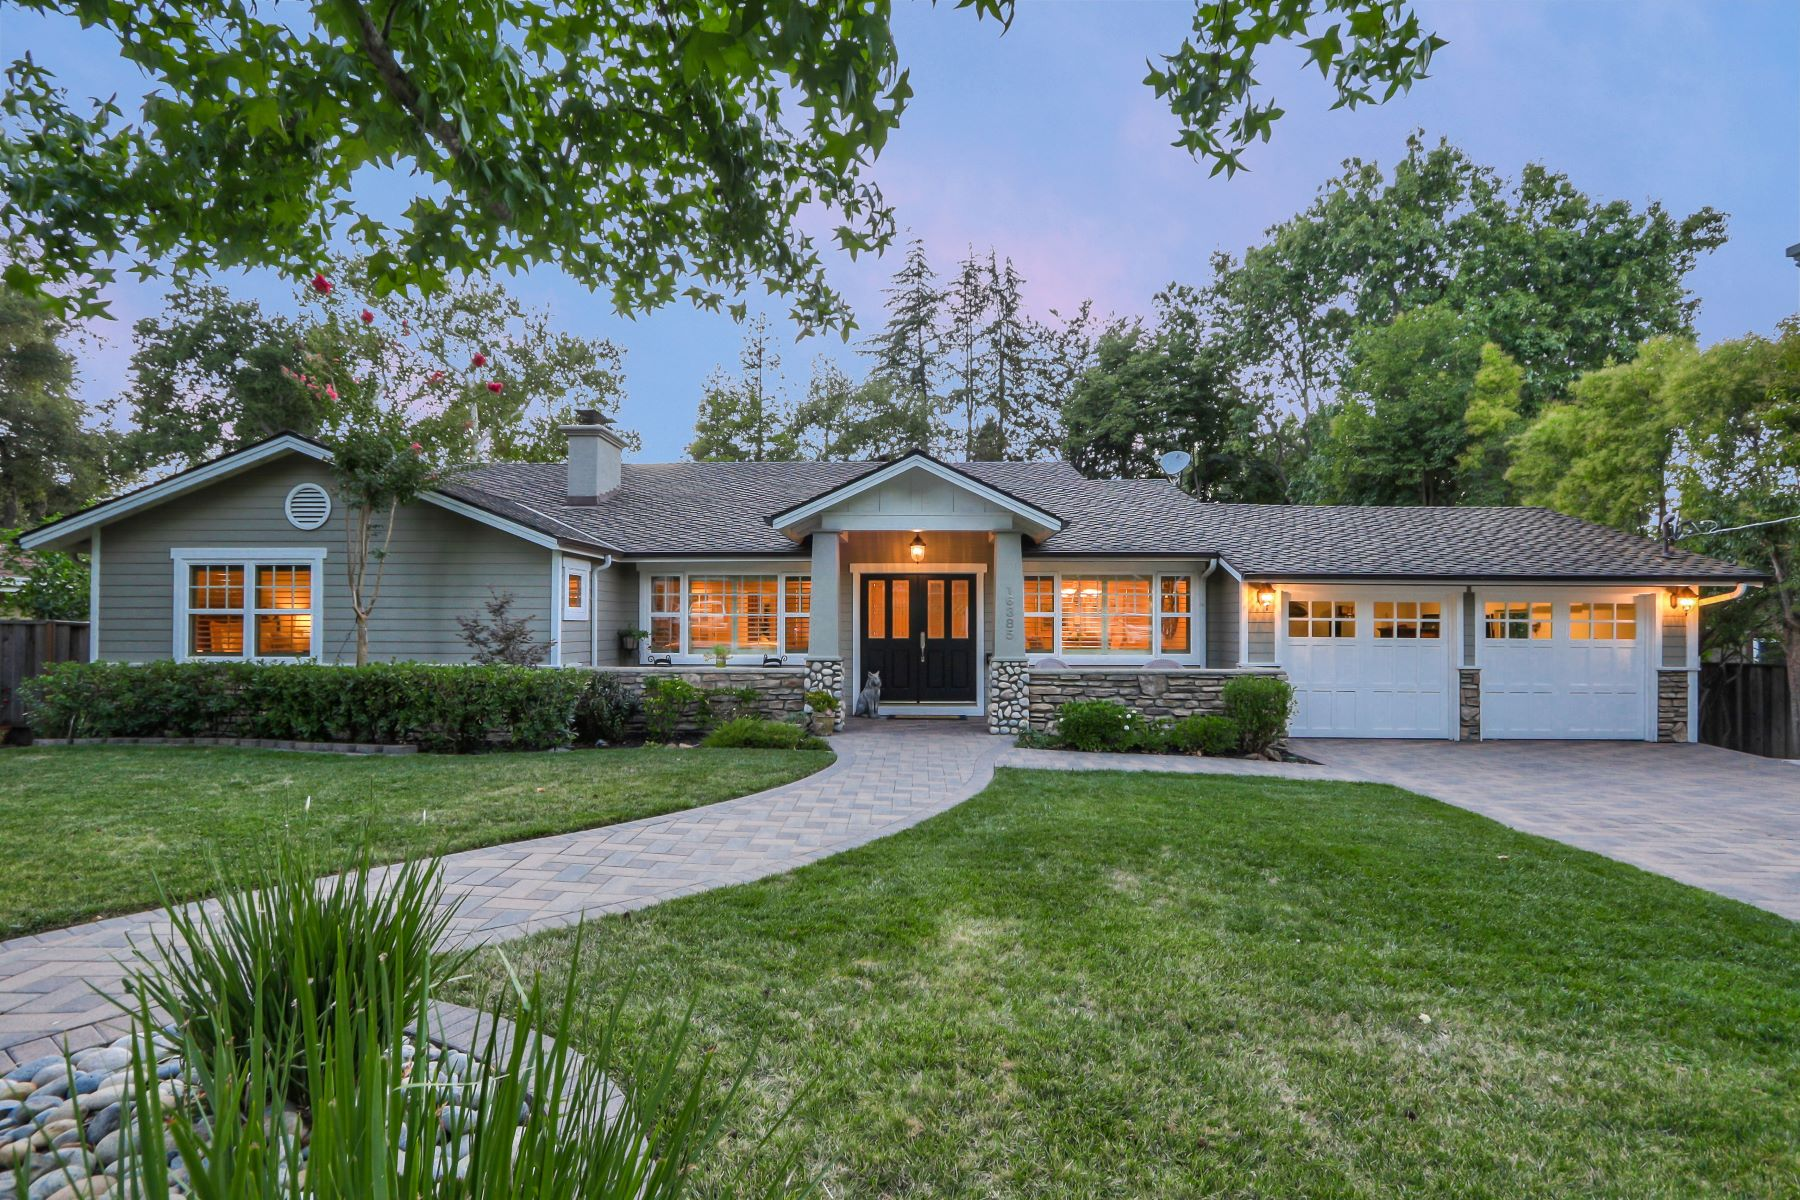 Single Family Homes for Sale at Stunning Craftsman Home in Los Gatos 16385 Peacock Lane Los Gatos, California 95032 United States